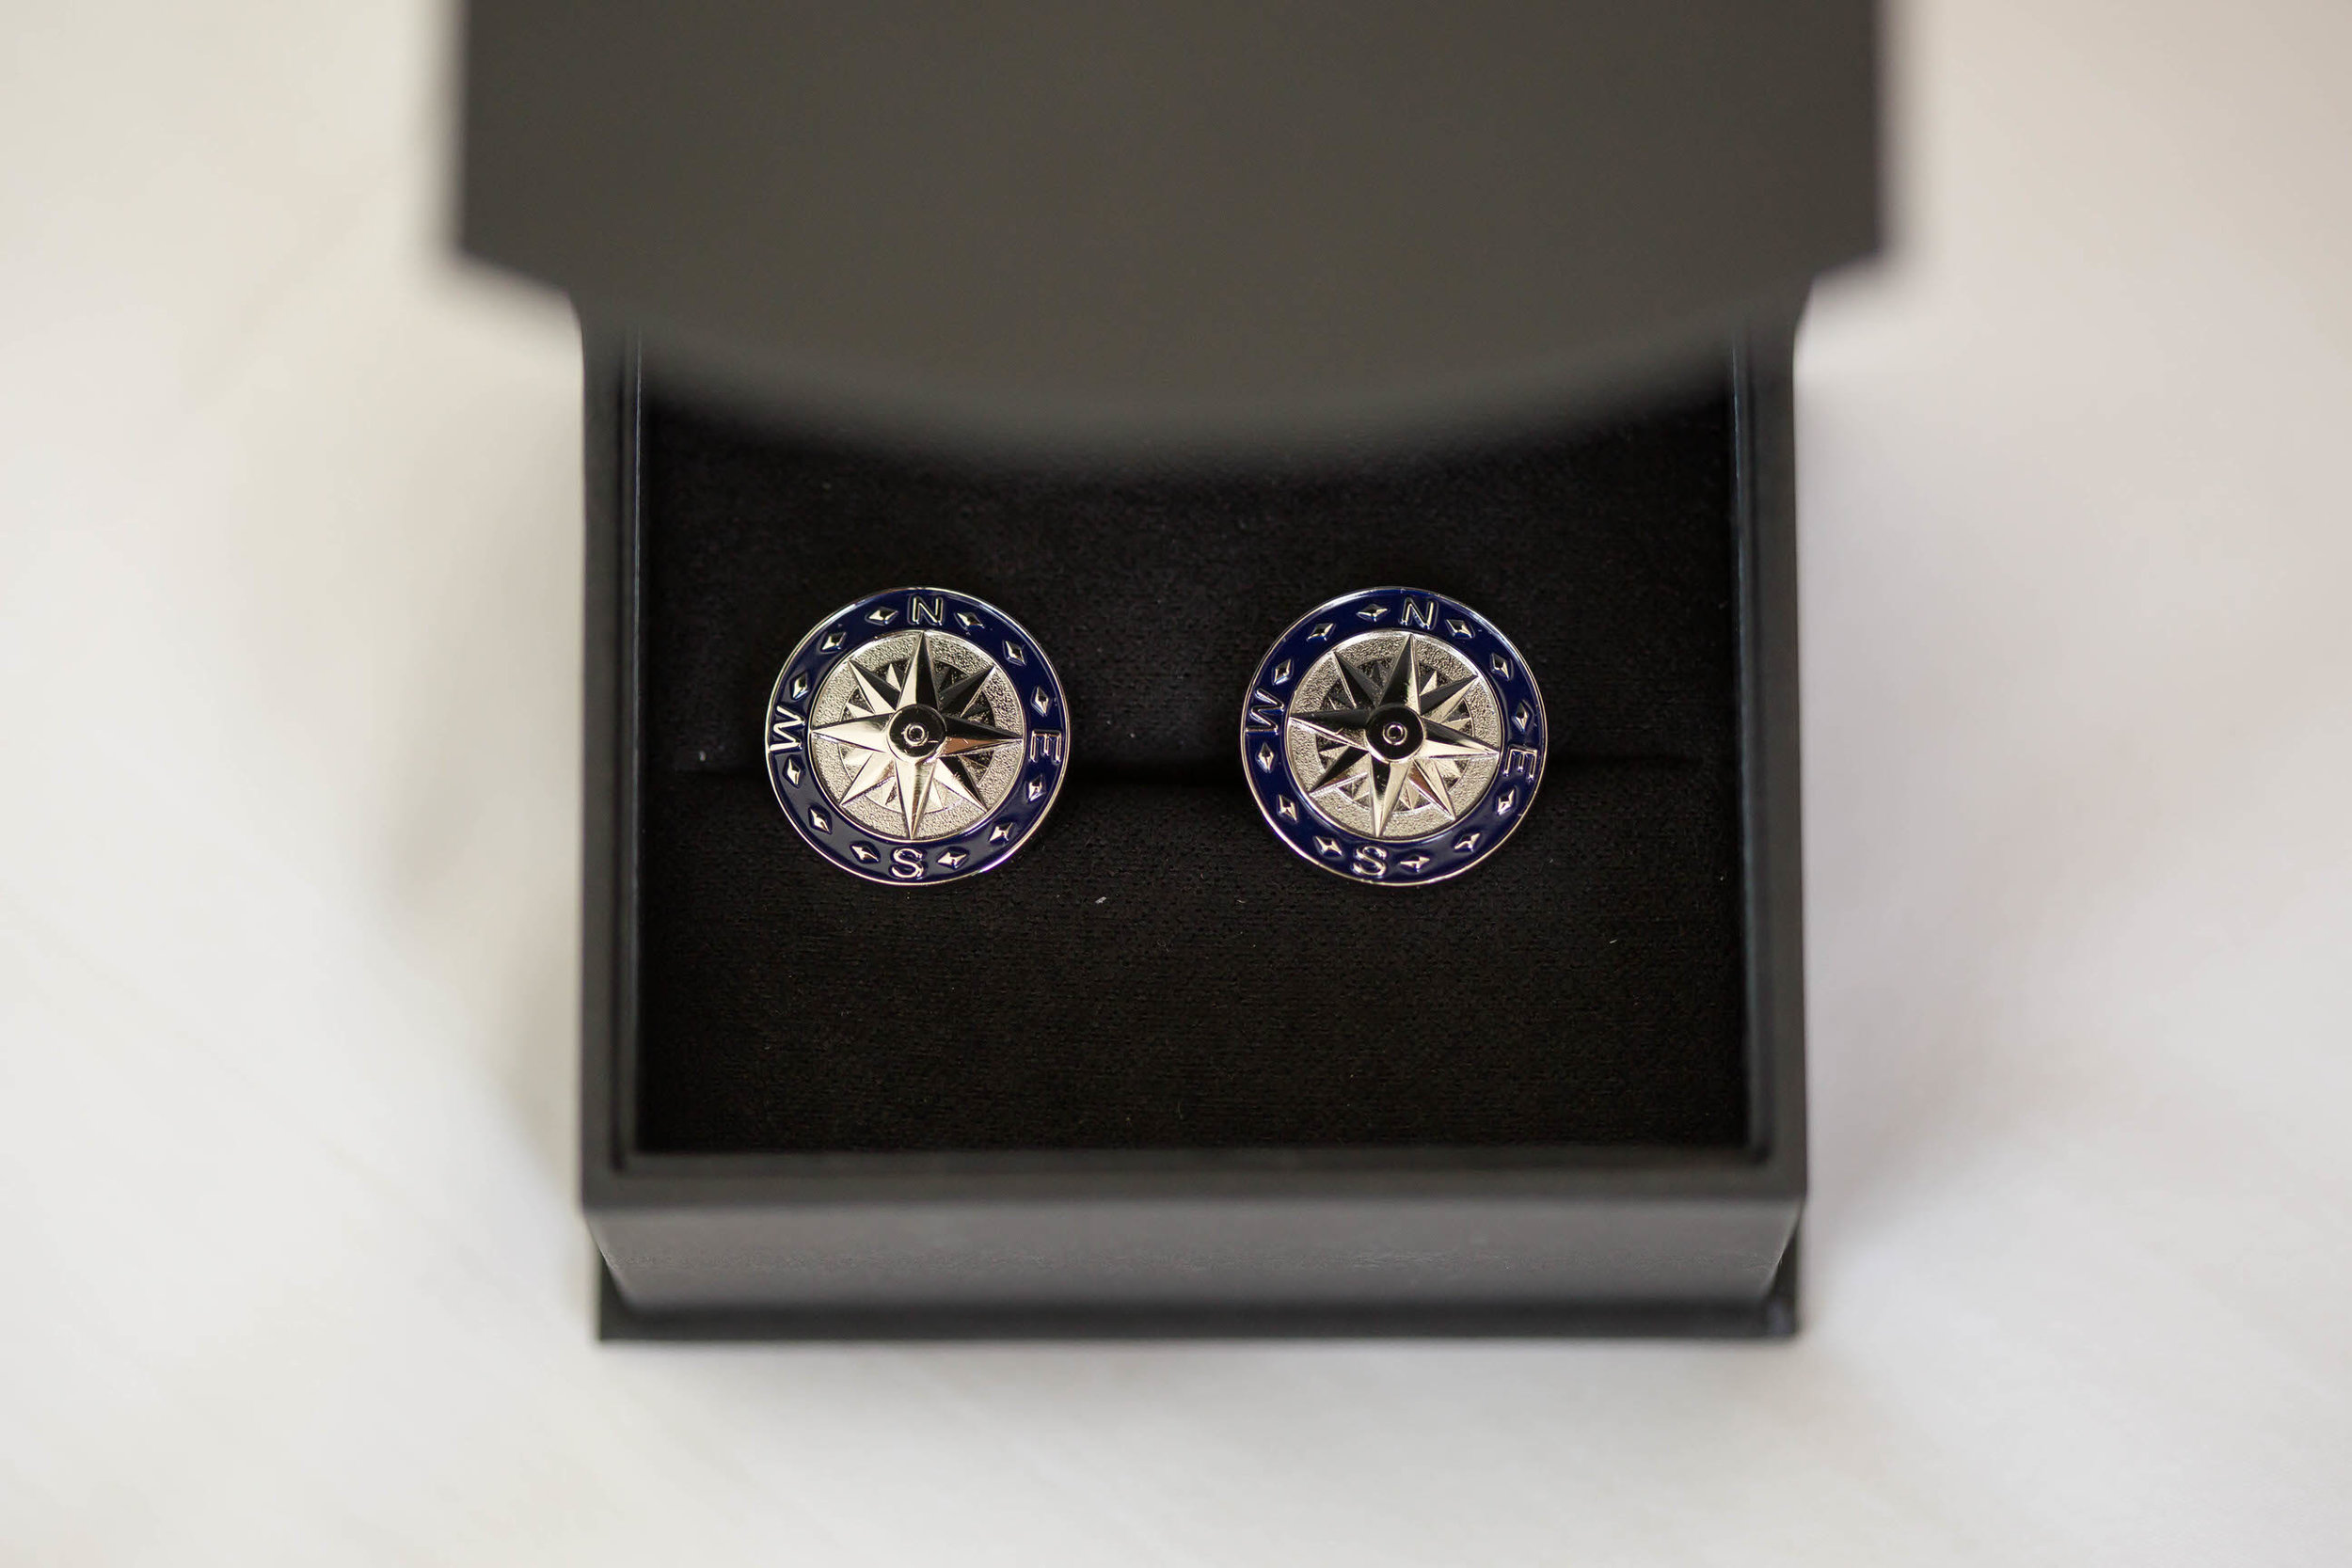 groom_cuff_links_present_tiny_house_photo_sonesta_wedding.jpg